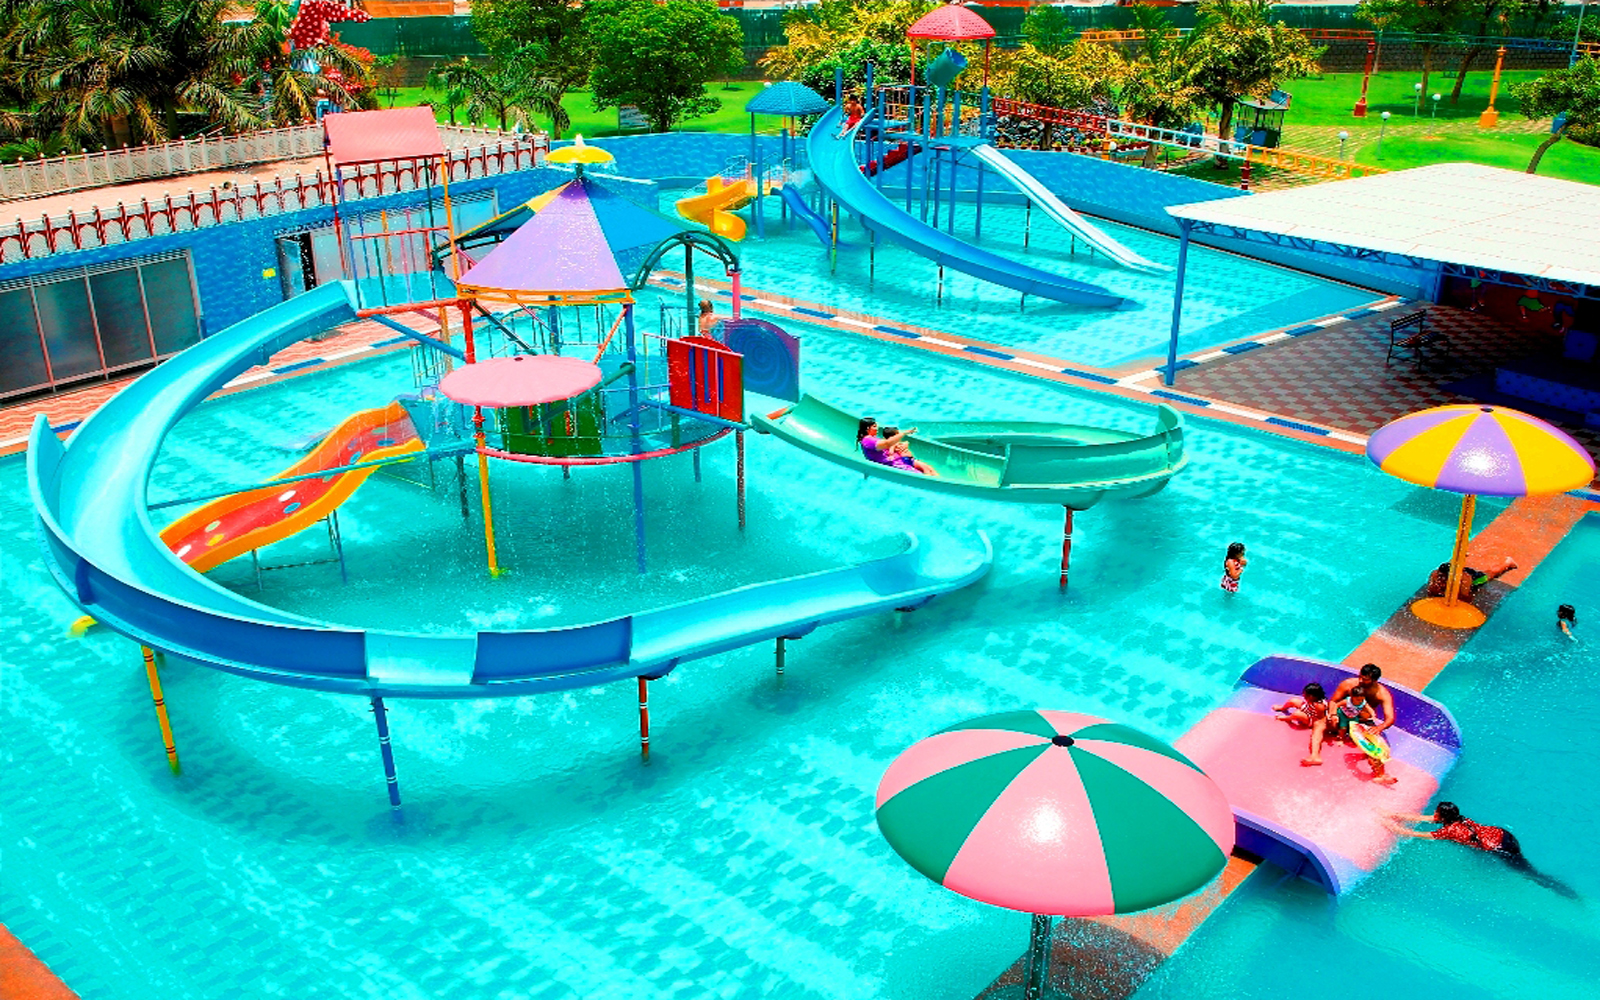 Aapno Ghar Resort Amusement and Water Park, Gurgaon